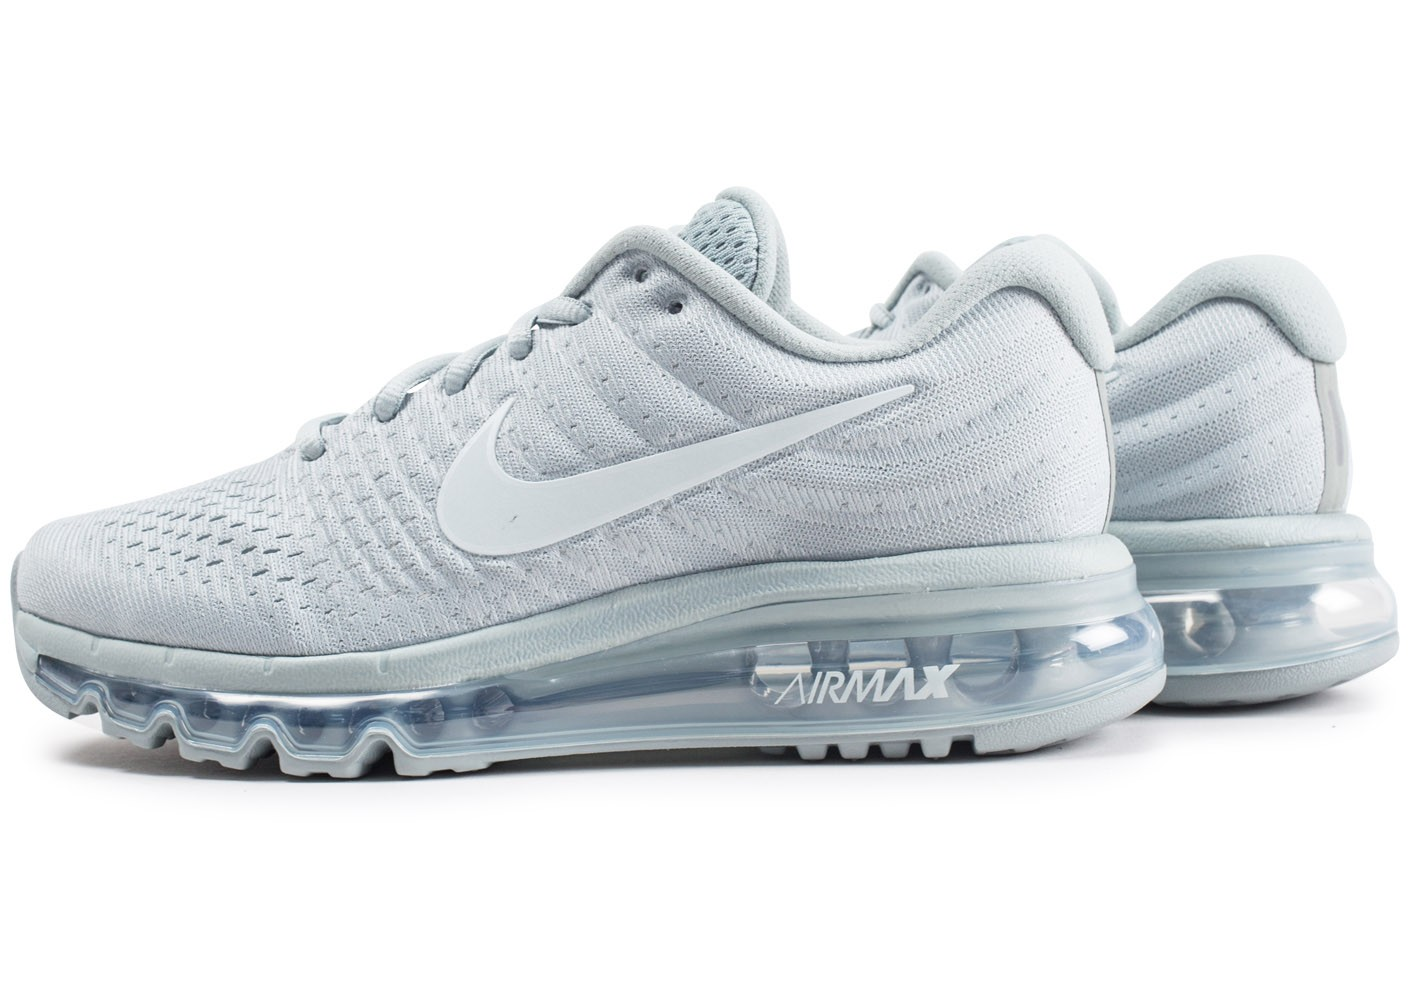 Nike Air Max 2017 SE grise et blanche - Chaussures Baskets ...